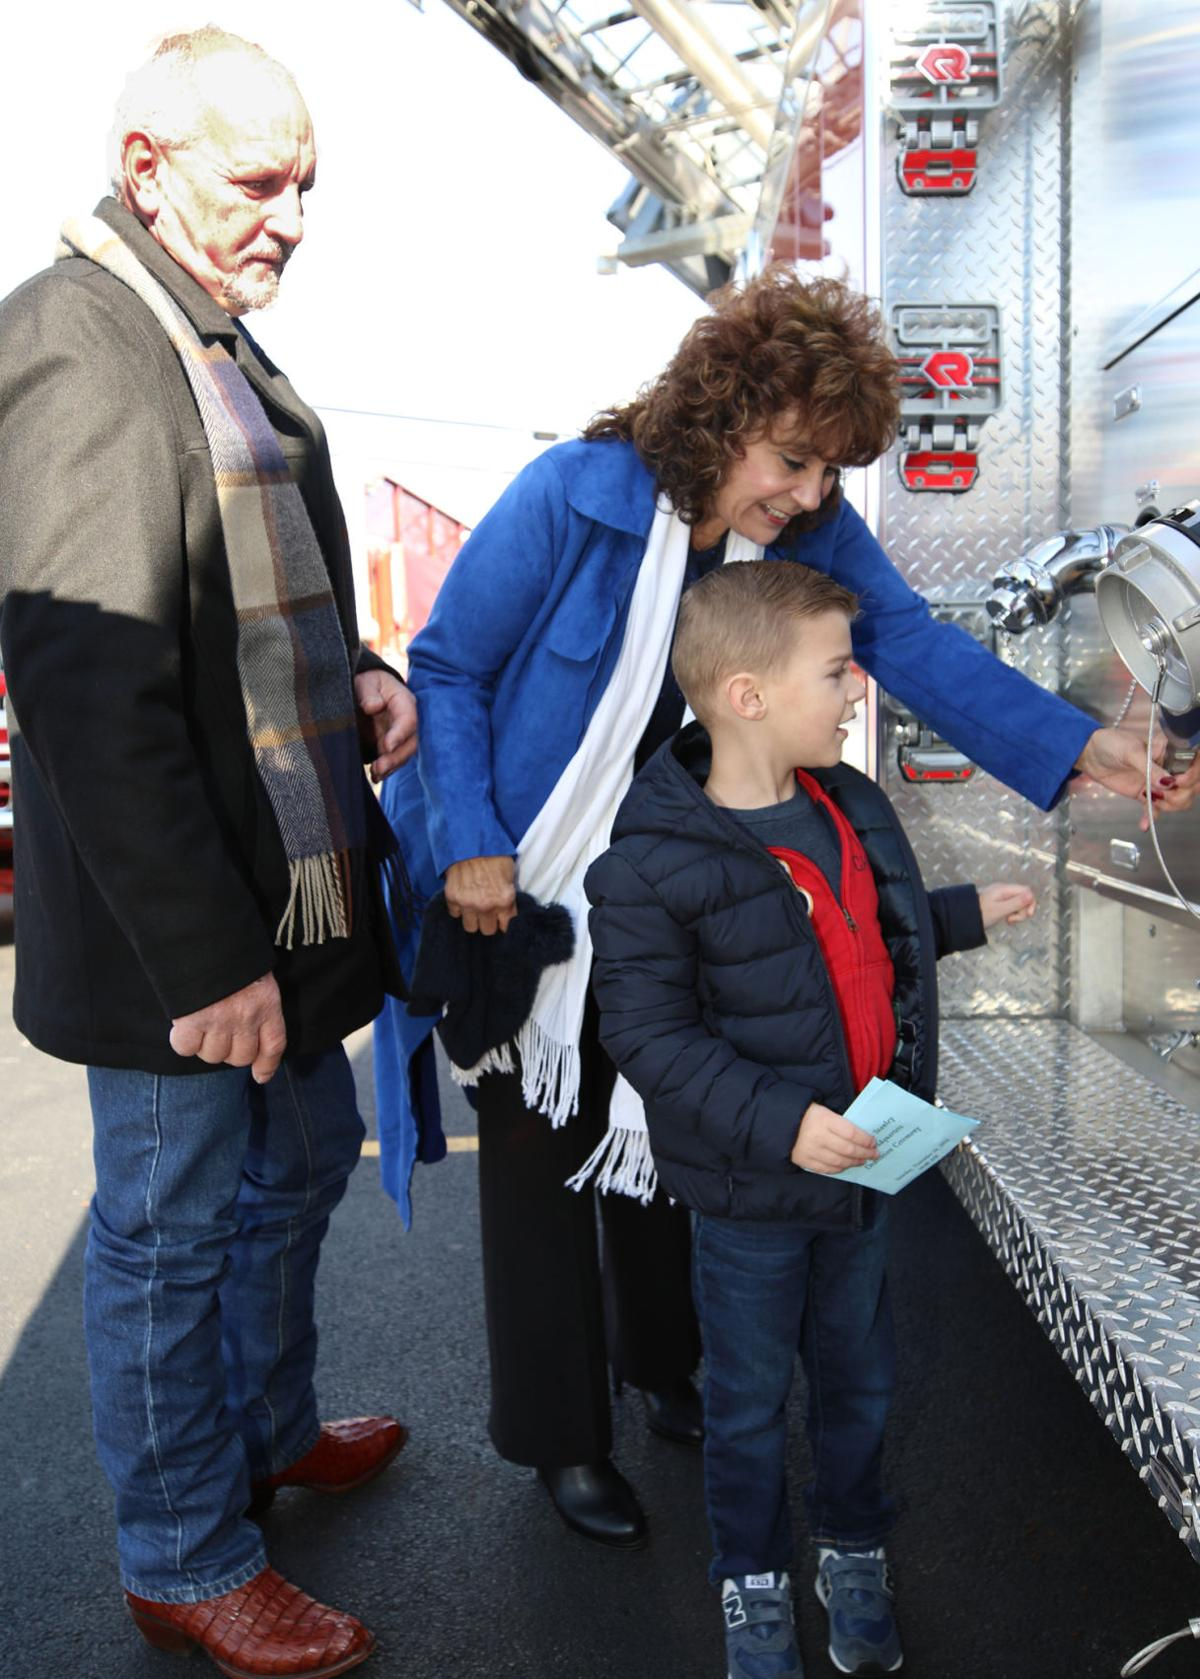 Lorraine and Harold Harrington enjoy watching their grandson J.R. LaPlante marvel at one of the many fire trucks on display during the Frederick A. Stanley Fire Headquarters Dedication Ceremony held Saturday, November 24th, 2018, at the Hope Valley Fire Department in Wyoming, RI. The Harrington family, owners of Shipman's Fire Equipment in Waterford, CT, have been good friends with Chief Stanley for many years and first met him when he wandered into their business to buy firefighting equipment. | Jackie Turner, Special to the Sun.